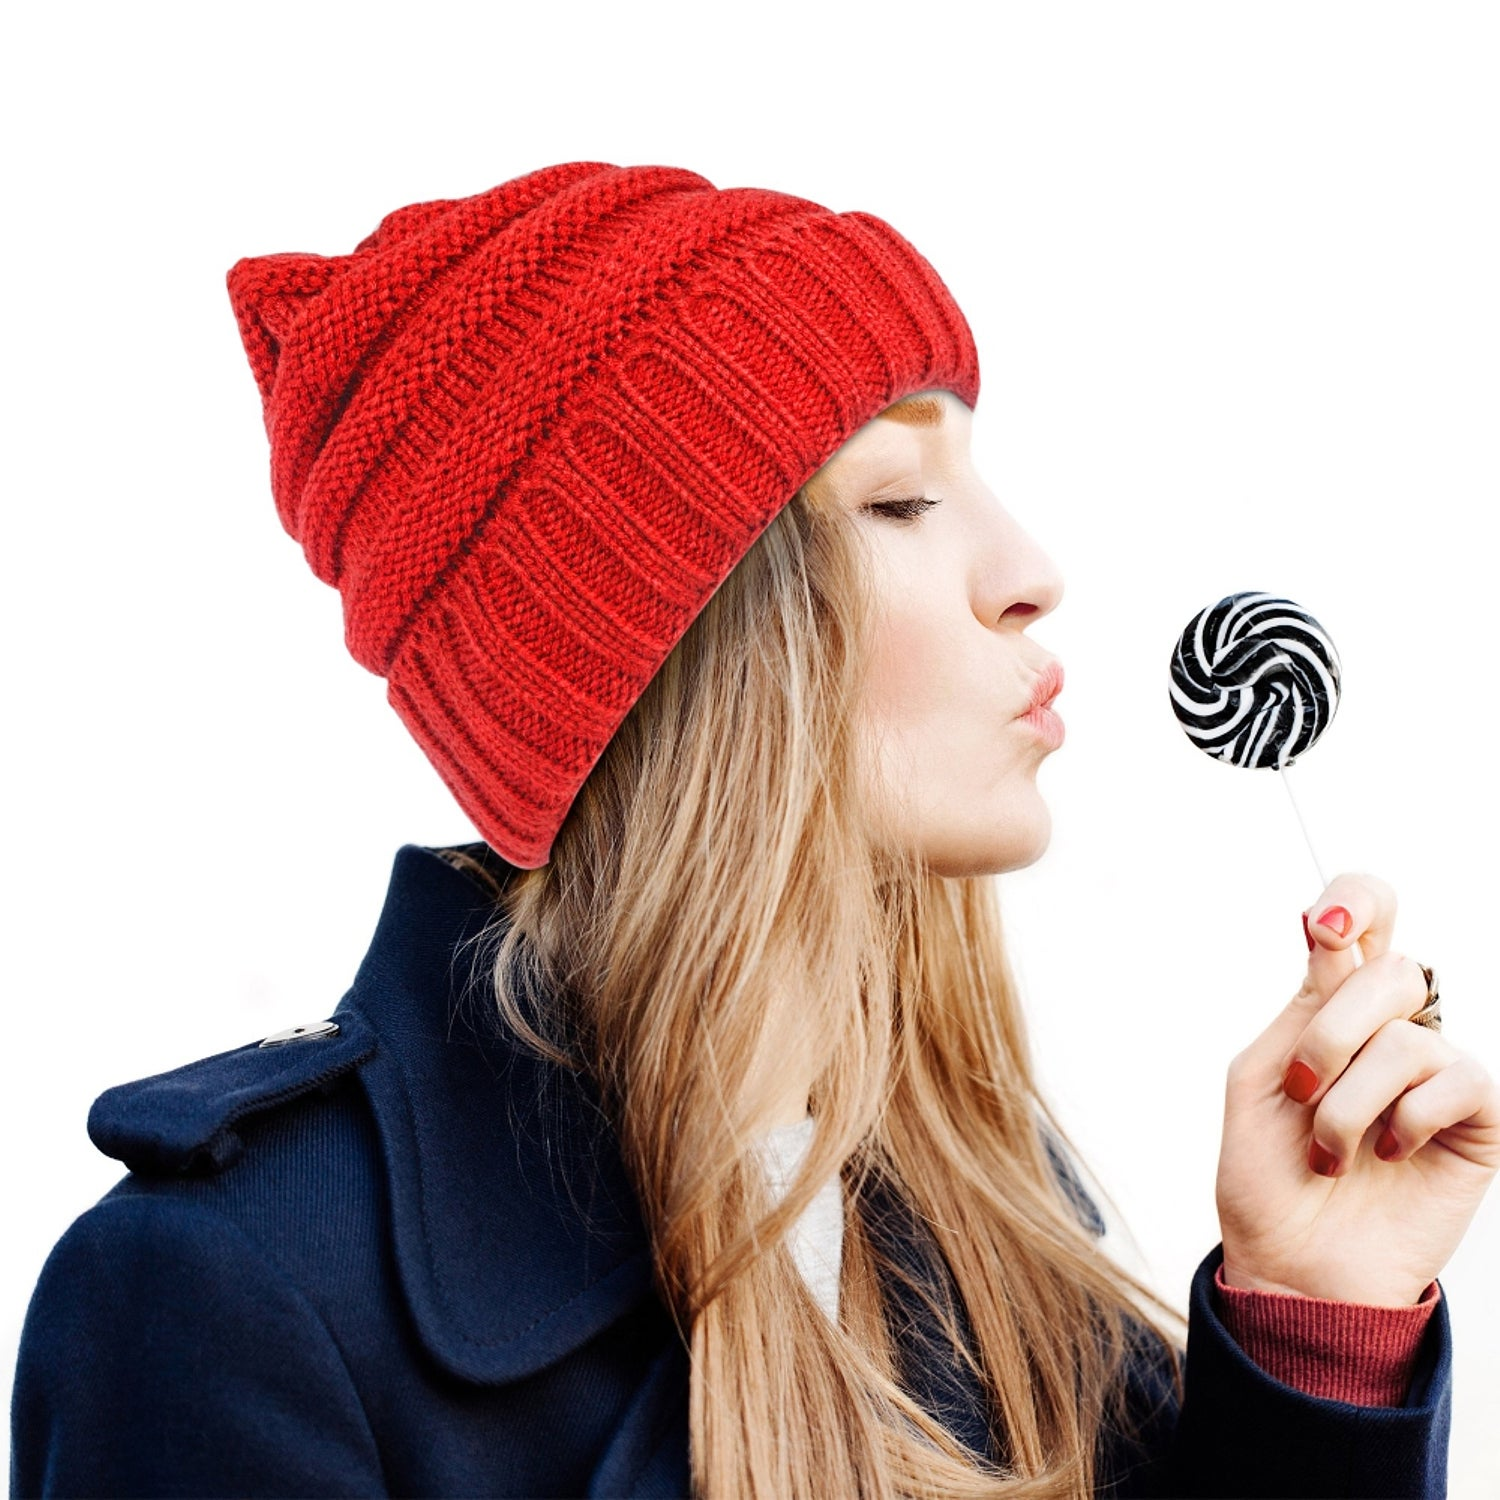 30e833ed Details about Zodaca Unisex Oversized Wavy Cable Knit Slouchy Beanie Knit  Hat Skull Cap for